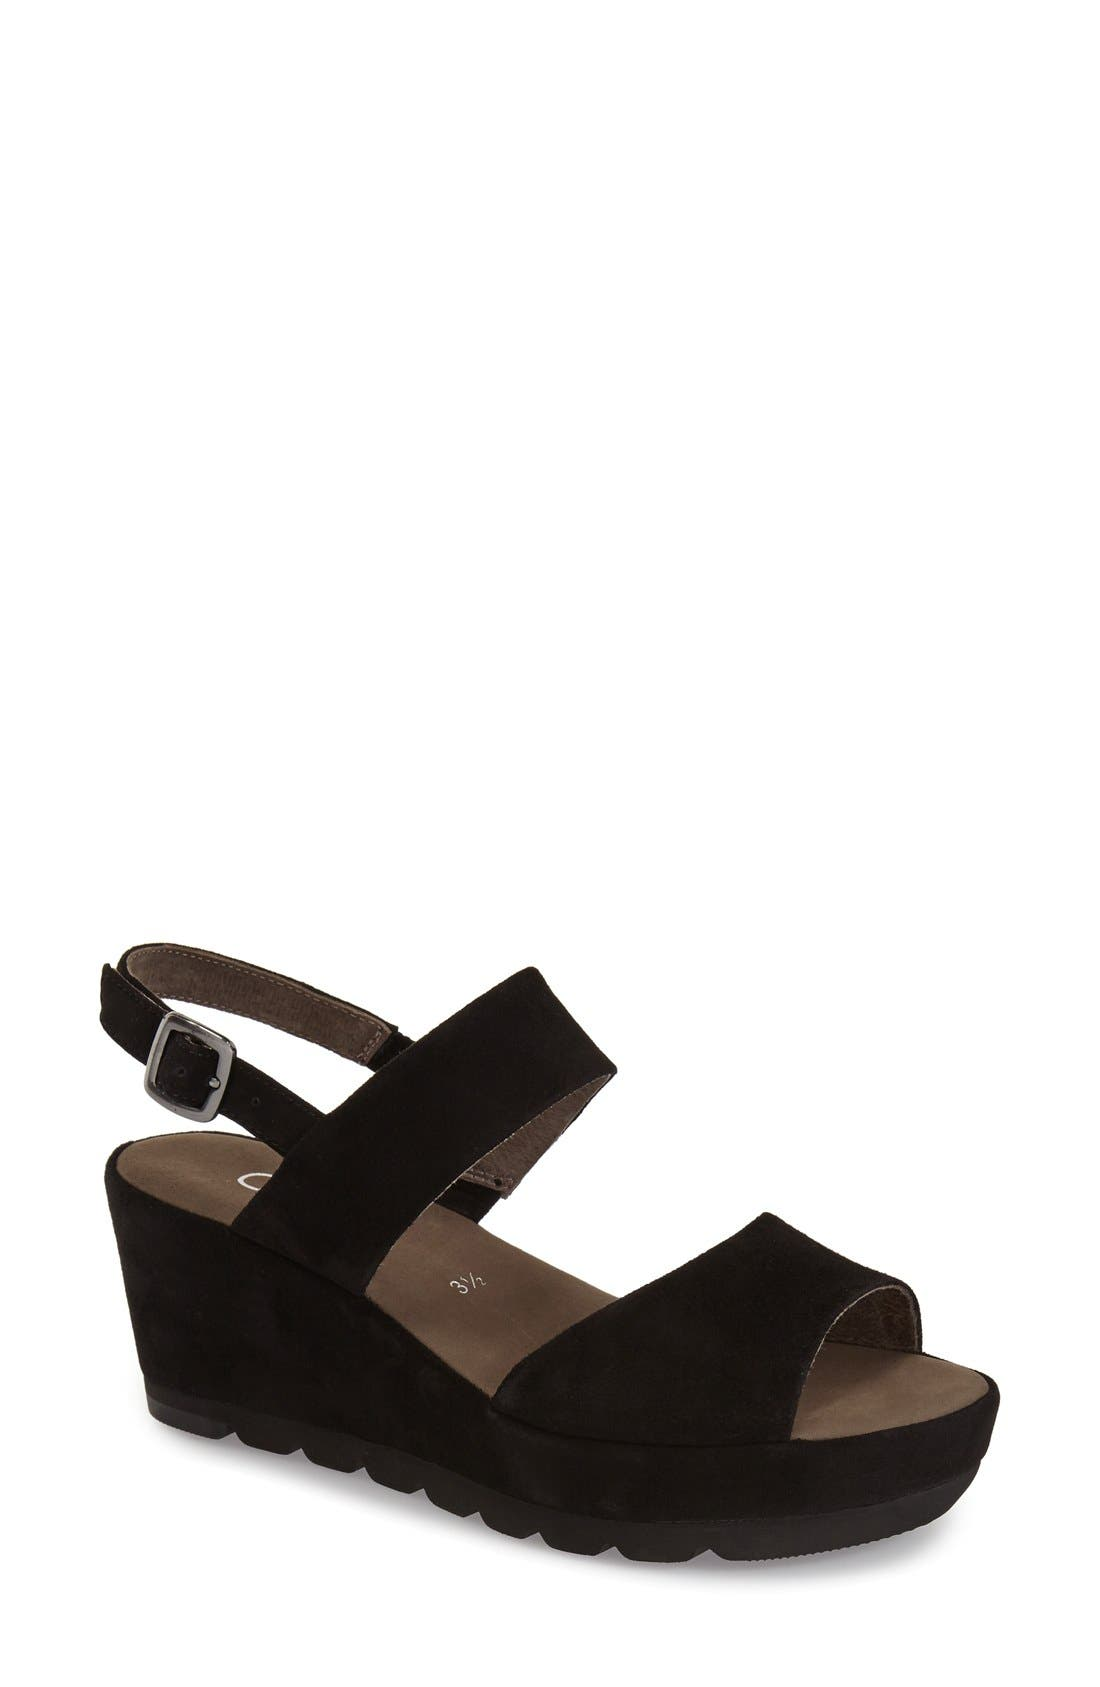 Alternate Image 1 Selected - Gabor Two-Strap Sandal (Women)